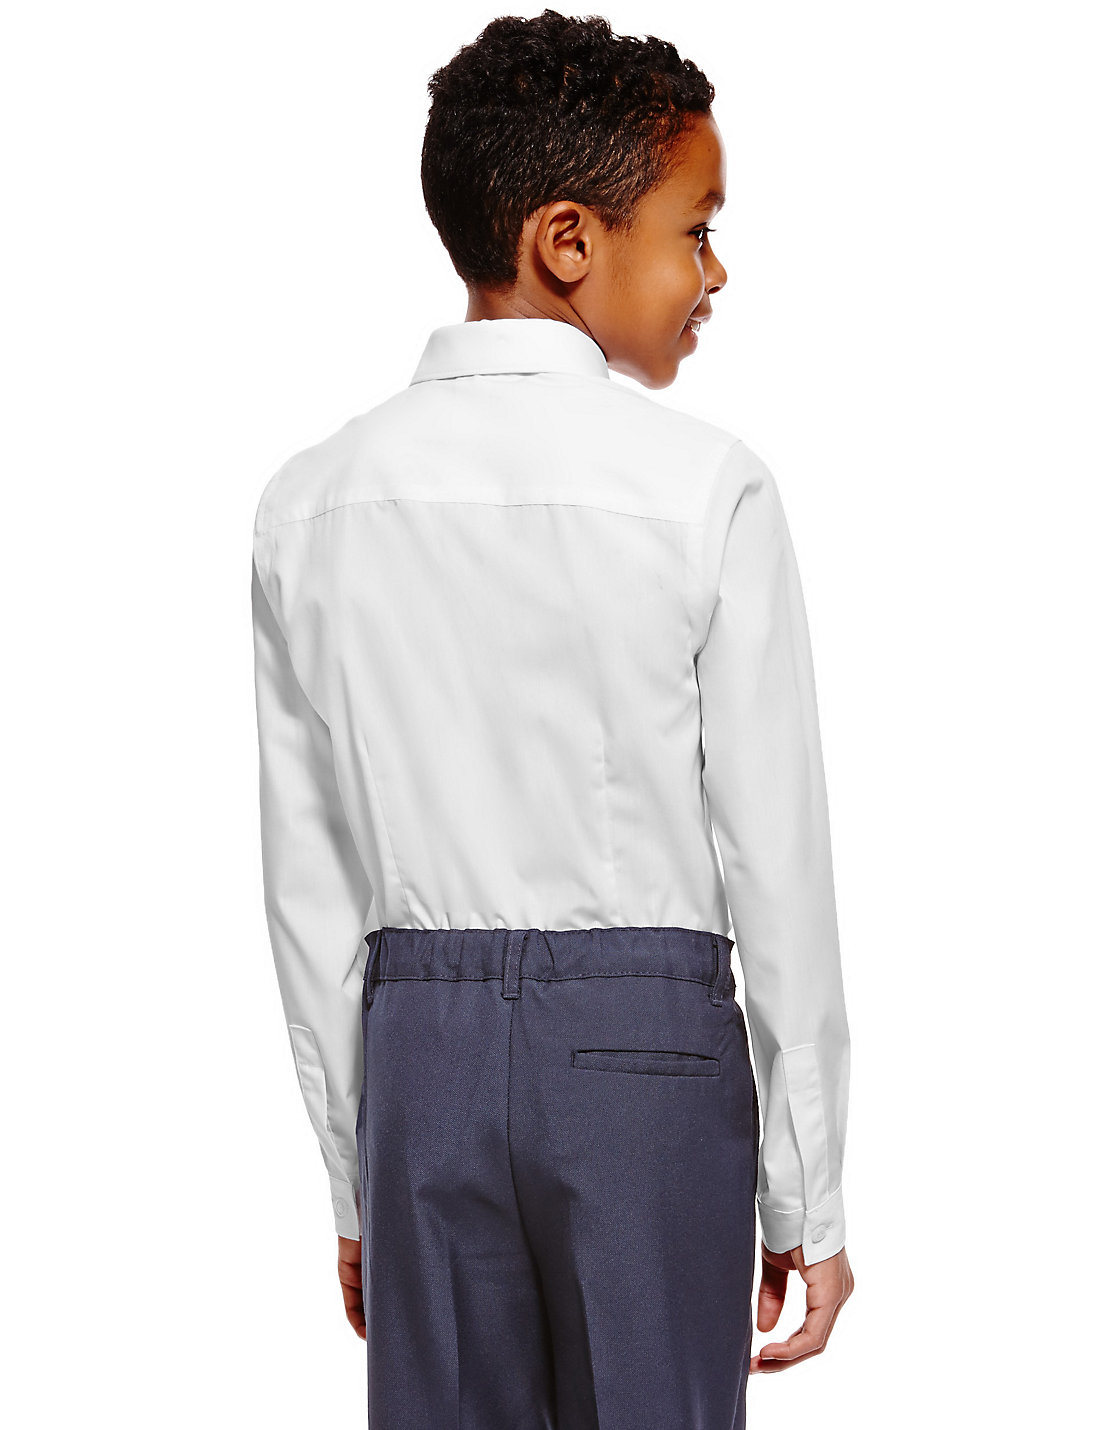 School Slim Fit Boys′ Long Sleeve Shirts with Stain Away